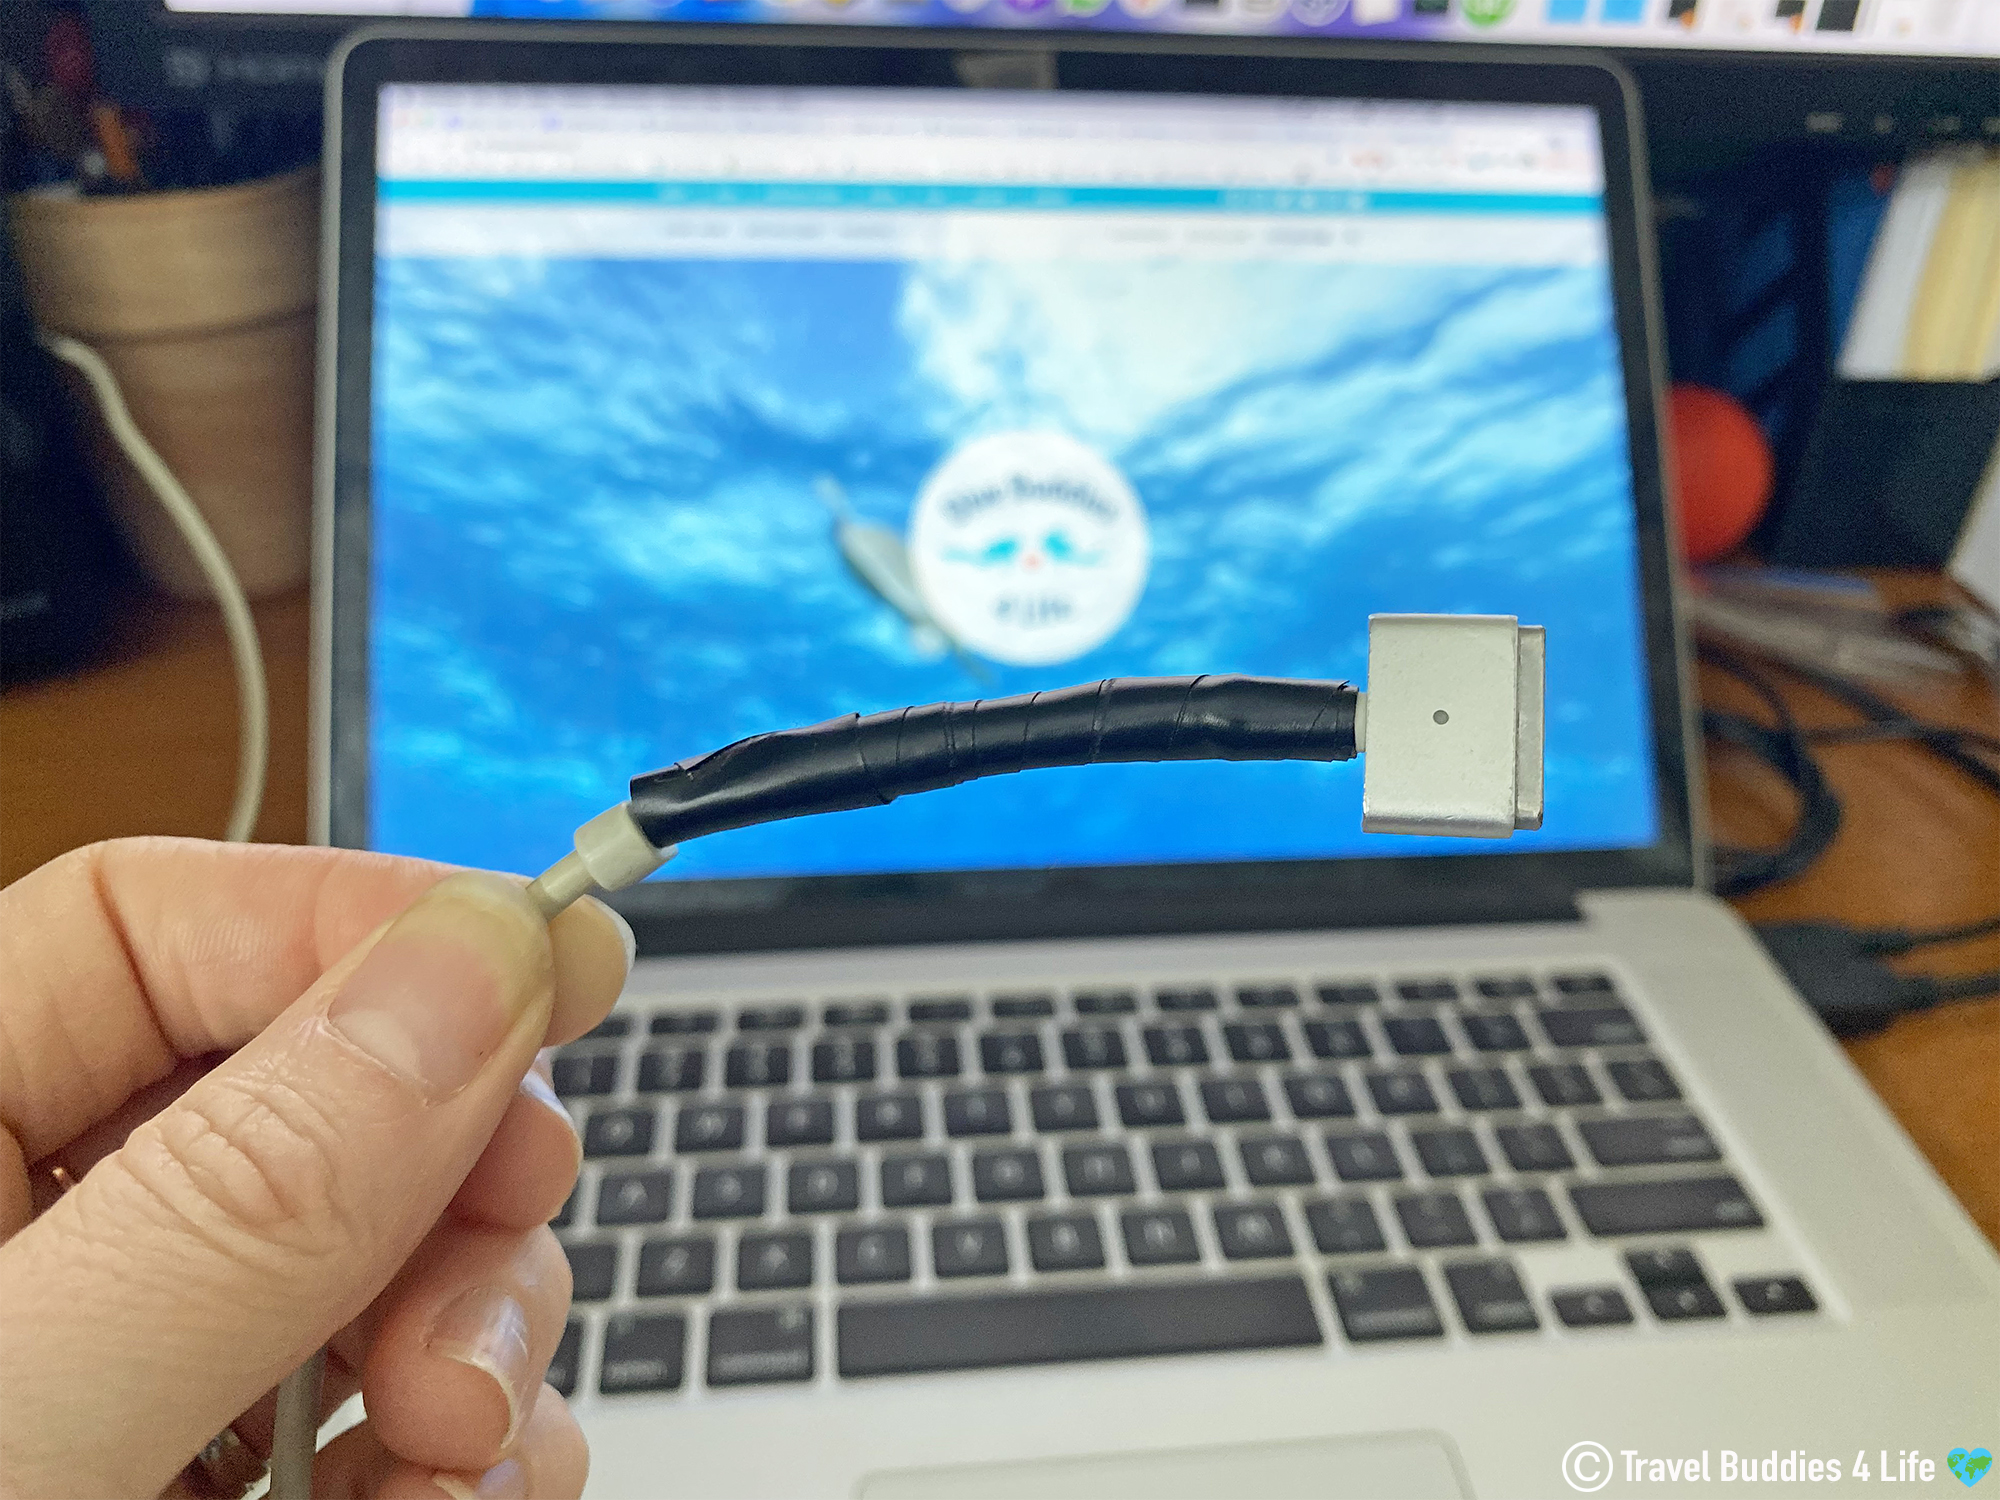 The Broken Charging Cable Of A Computer Fixed With Electrical Tape